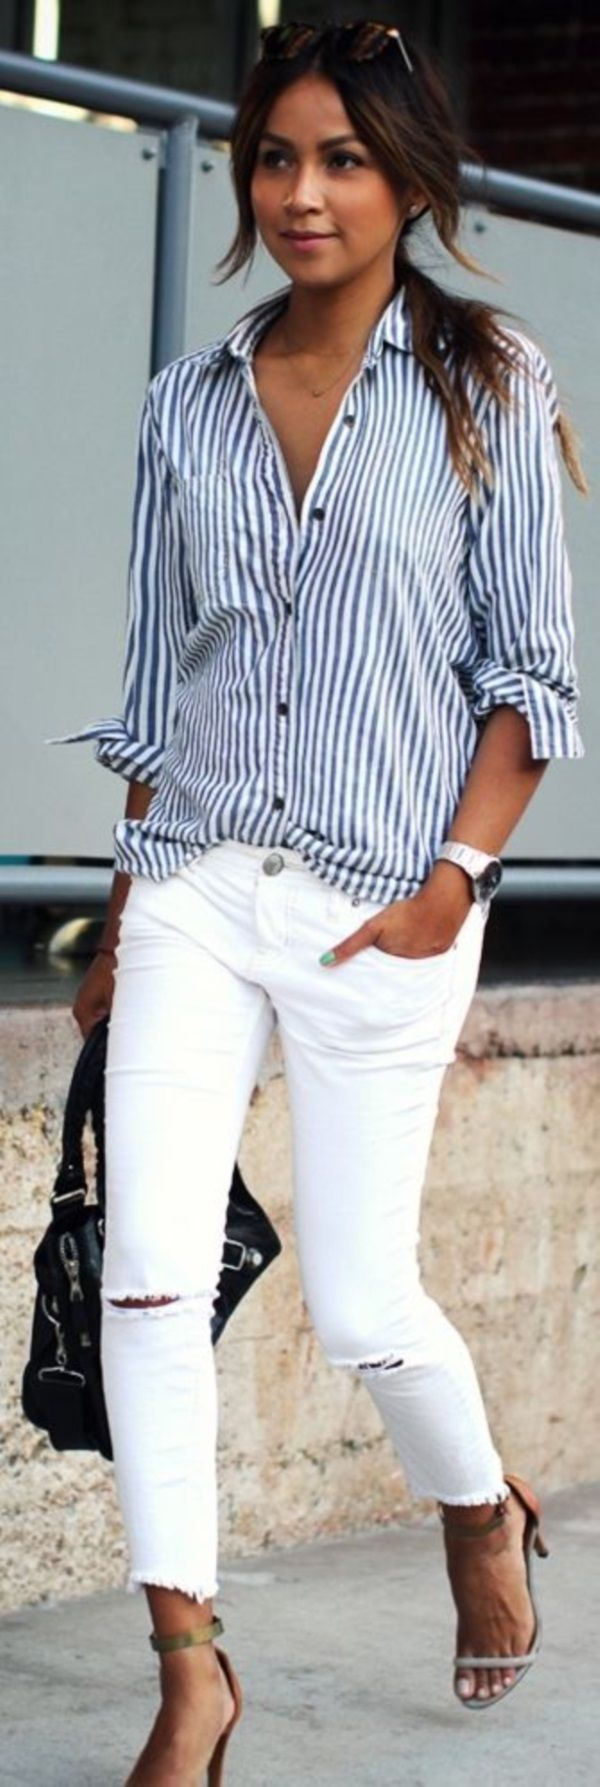 White Skinny Jeans Outfit Pinterest